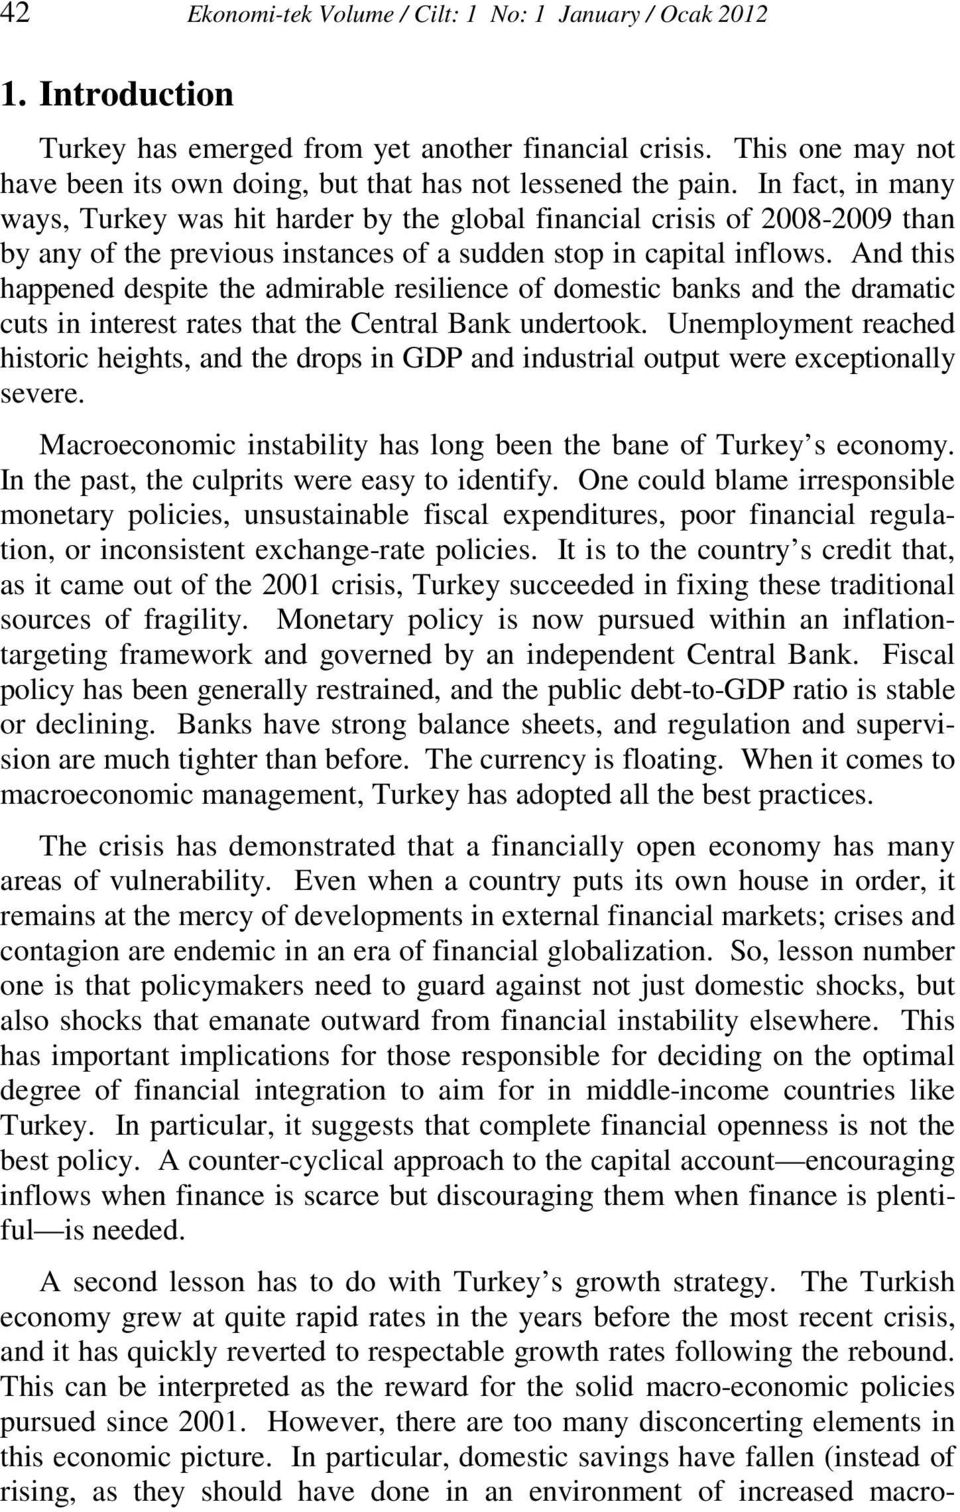 In fact, in many ways, Turkey was hit harder by the global financial crisis of 2008-2009 than by any of the previous instances of a sudden stop in capital inflows.